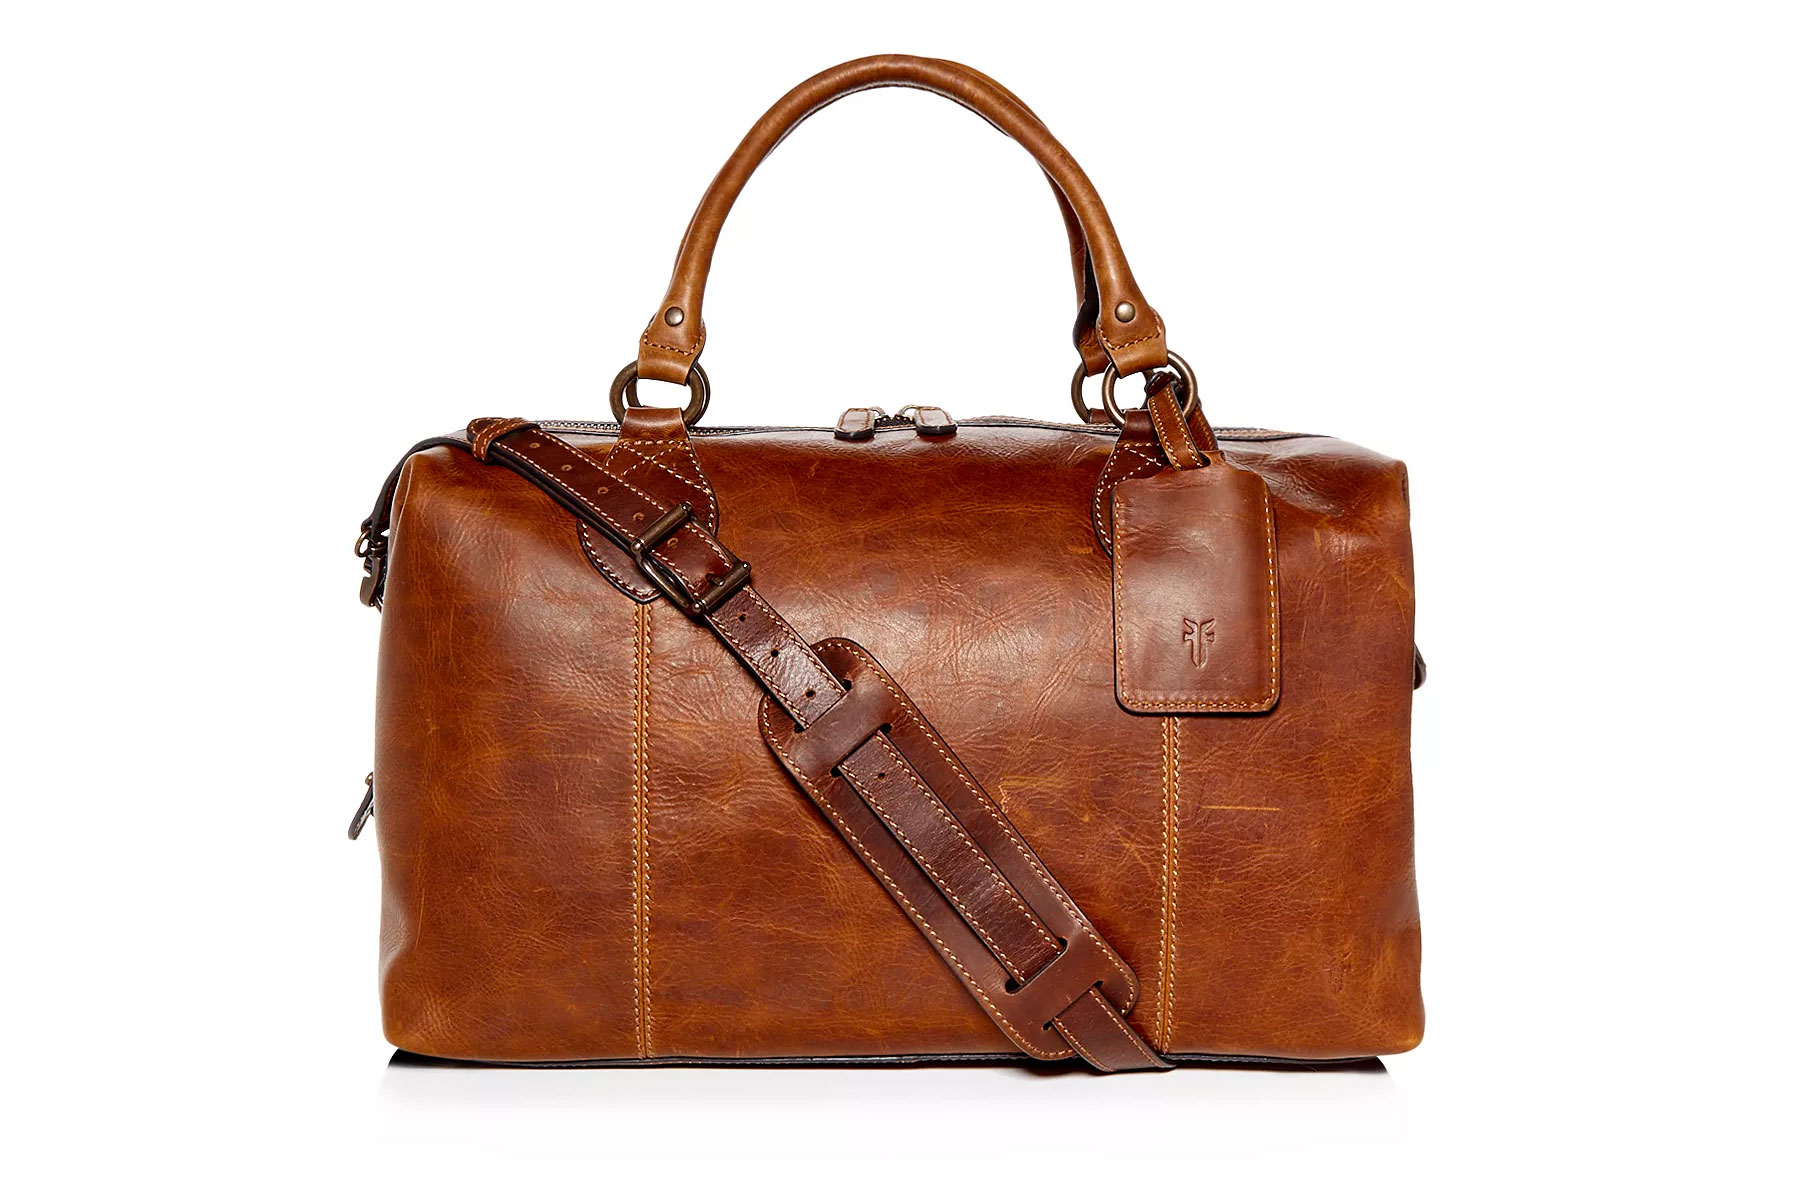 Brown leather duffel bag